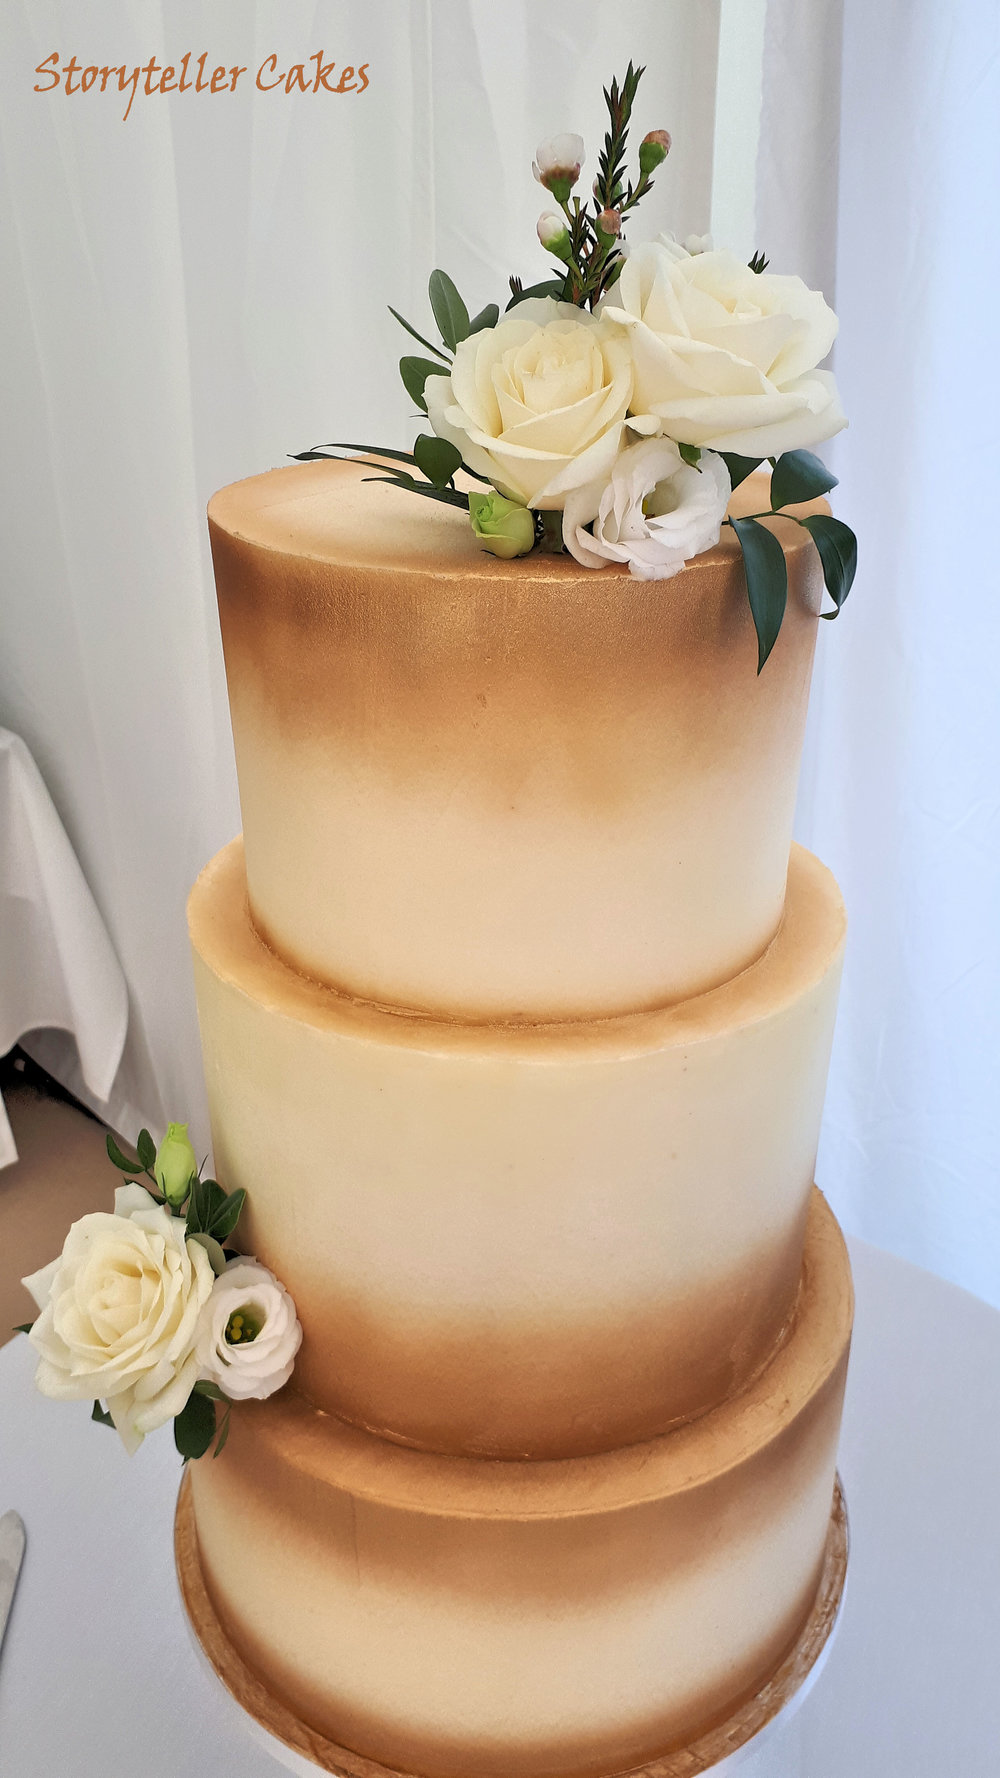 Gold and white buttercream rose wedding cake2.jpg